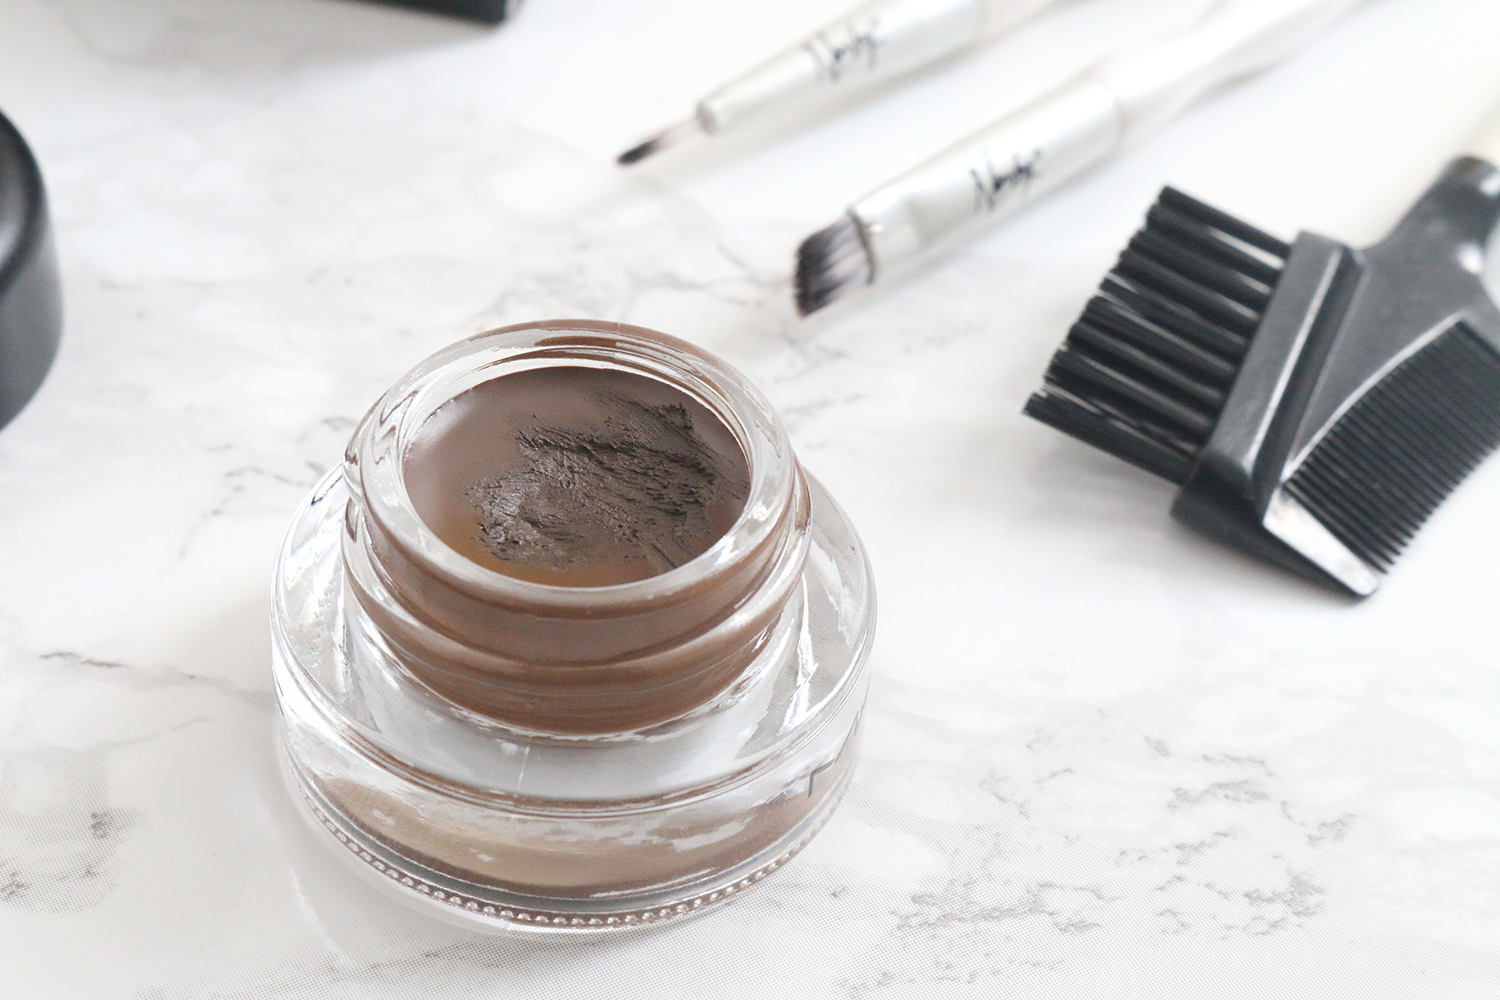 MAC Fluidline Brow Gelcreme in Dark Brown